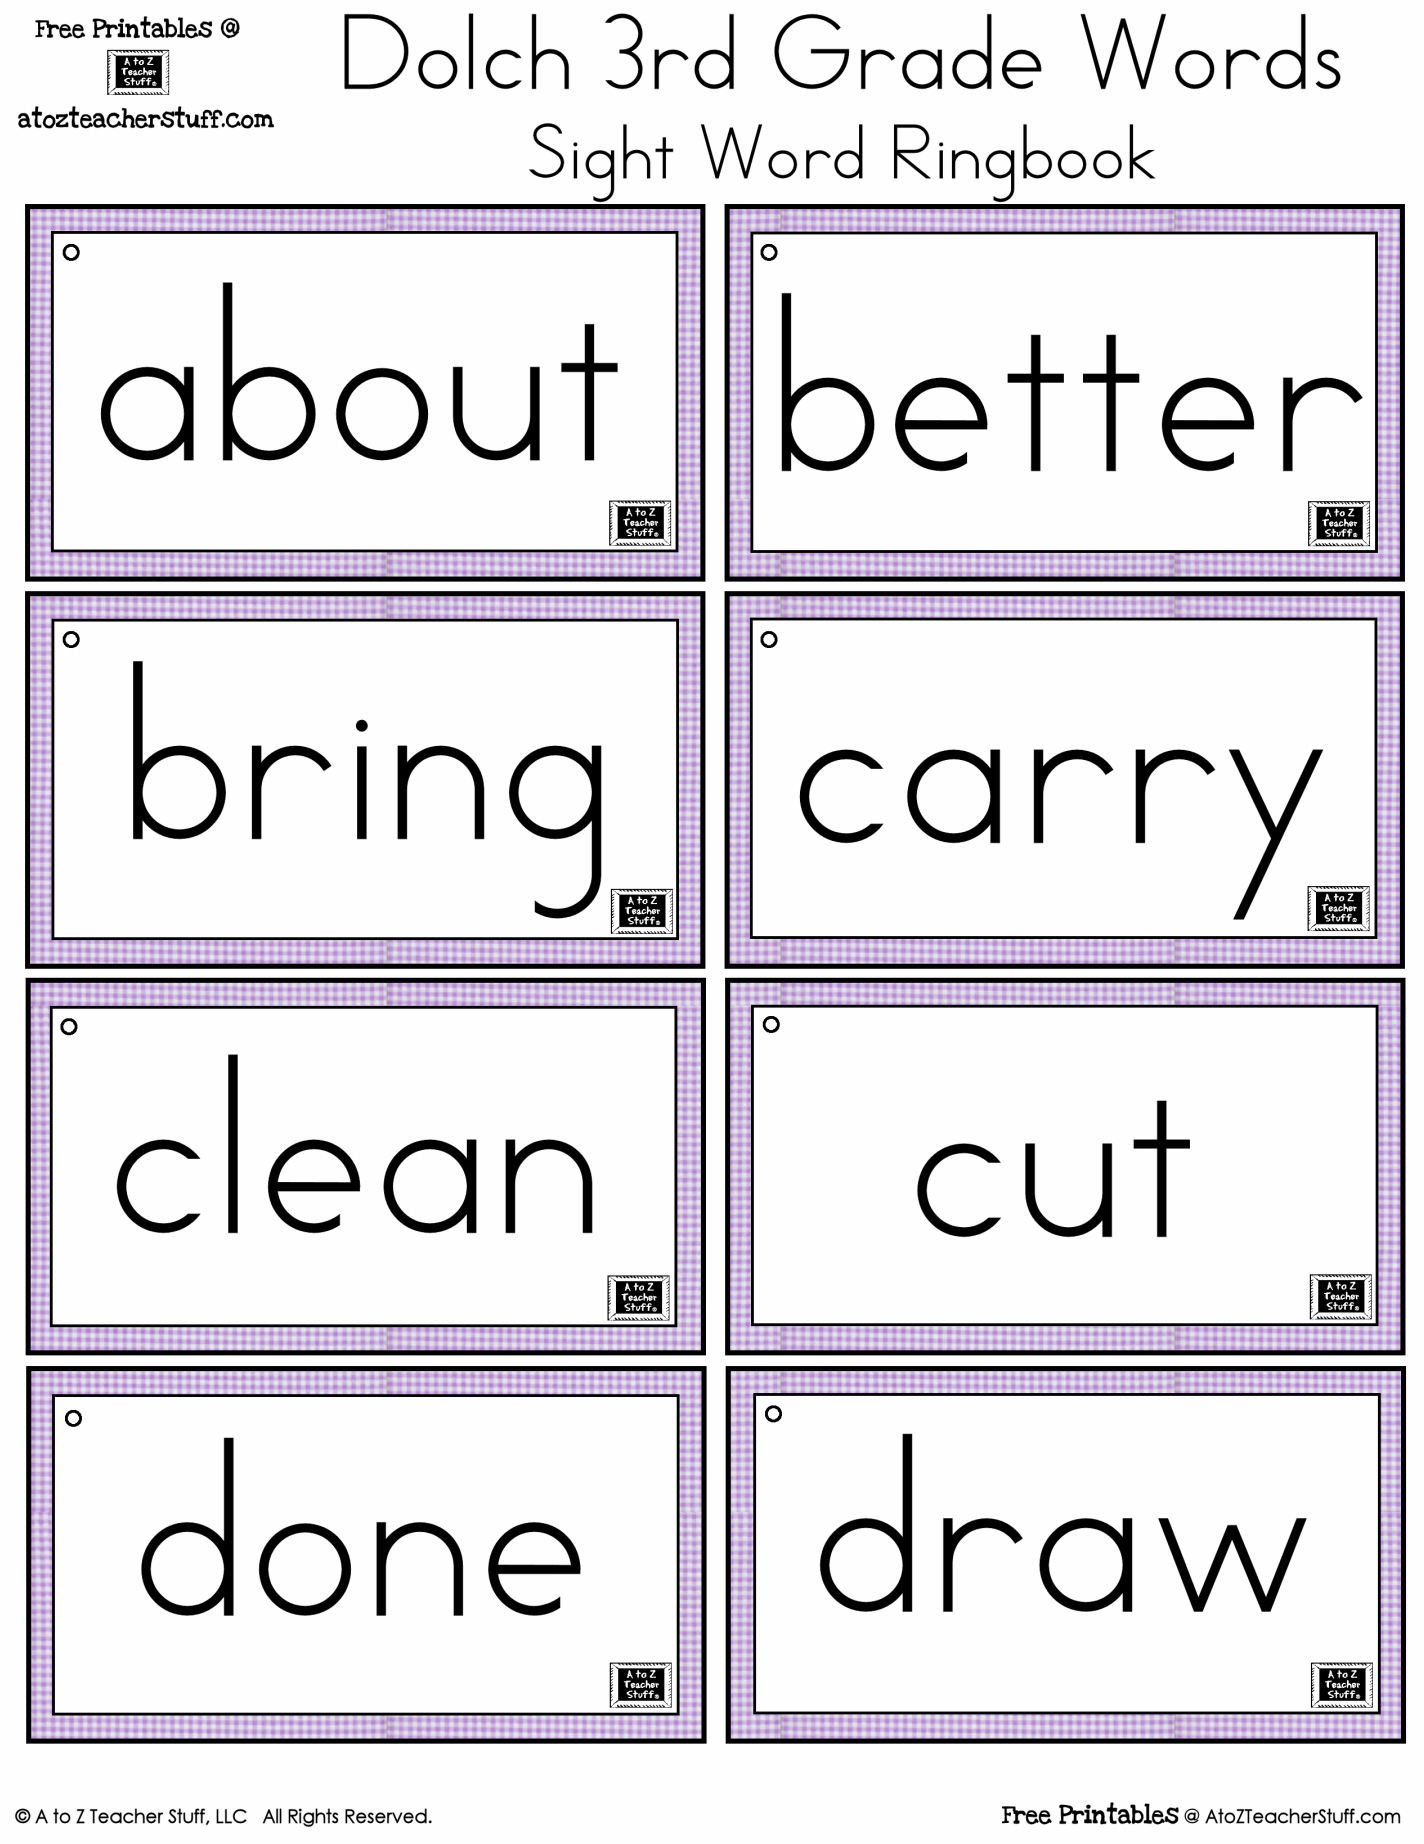 Free Dolch Pre Primer Sight Words Worksheets